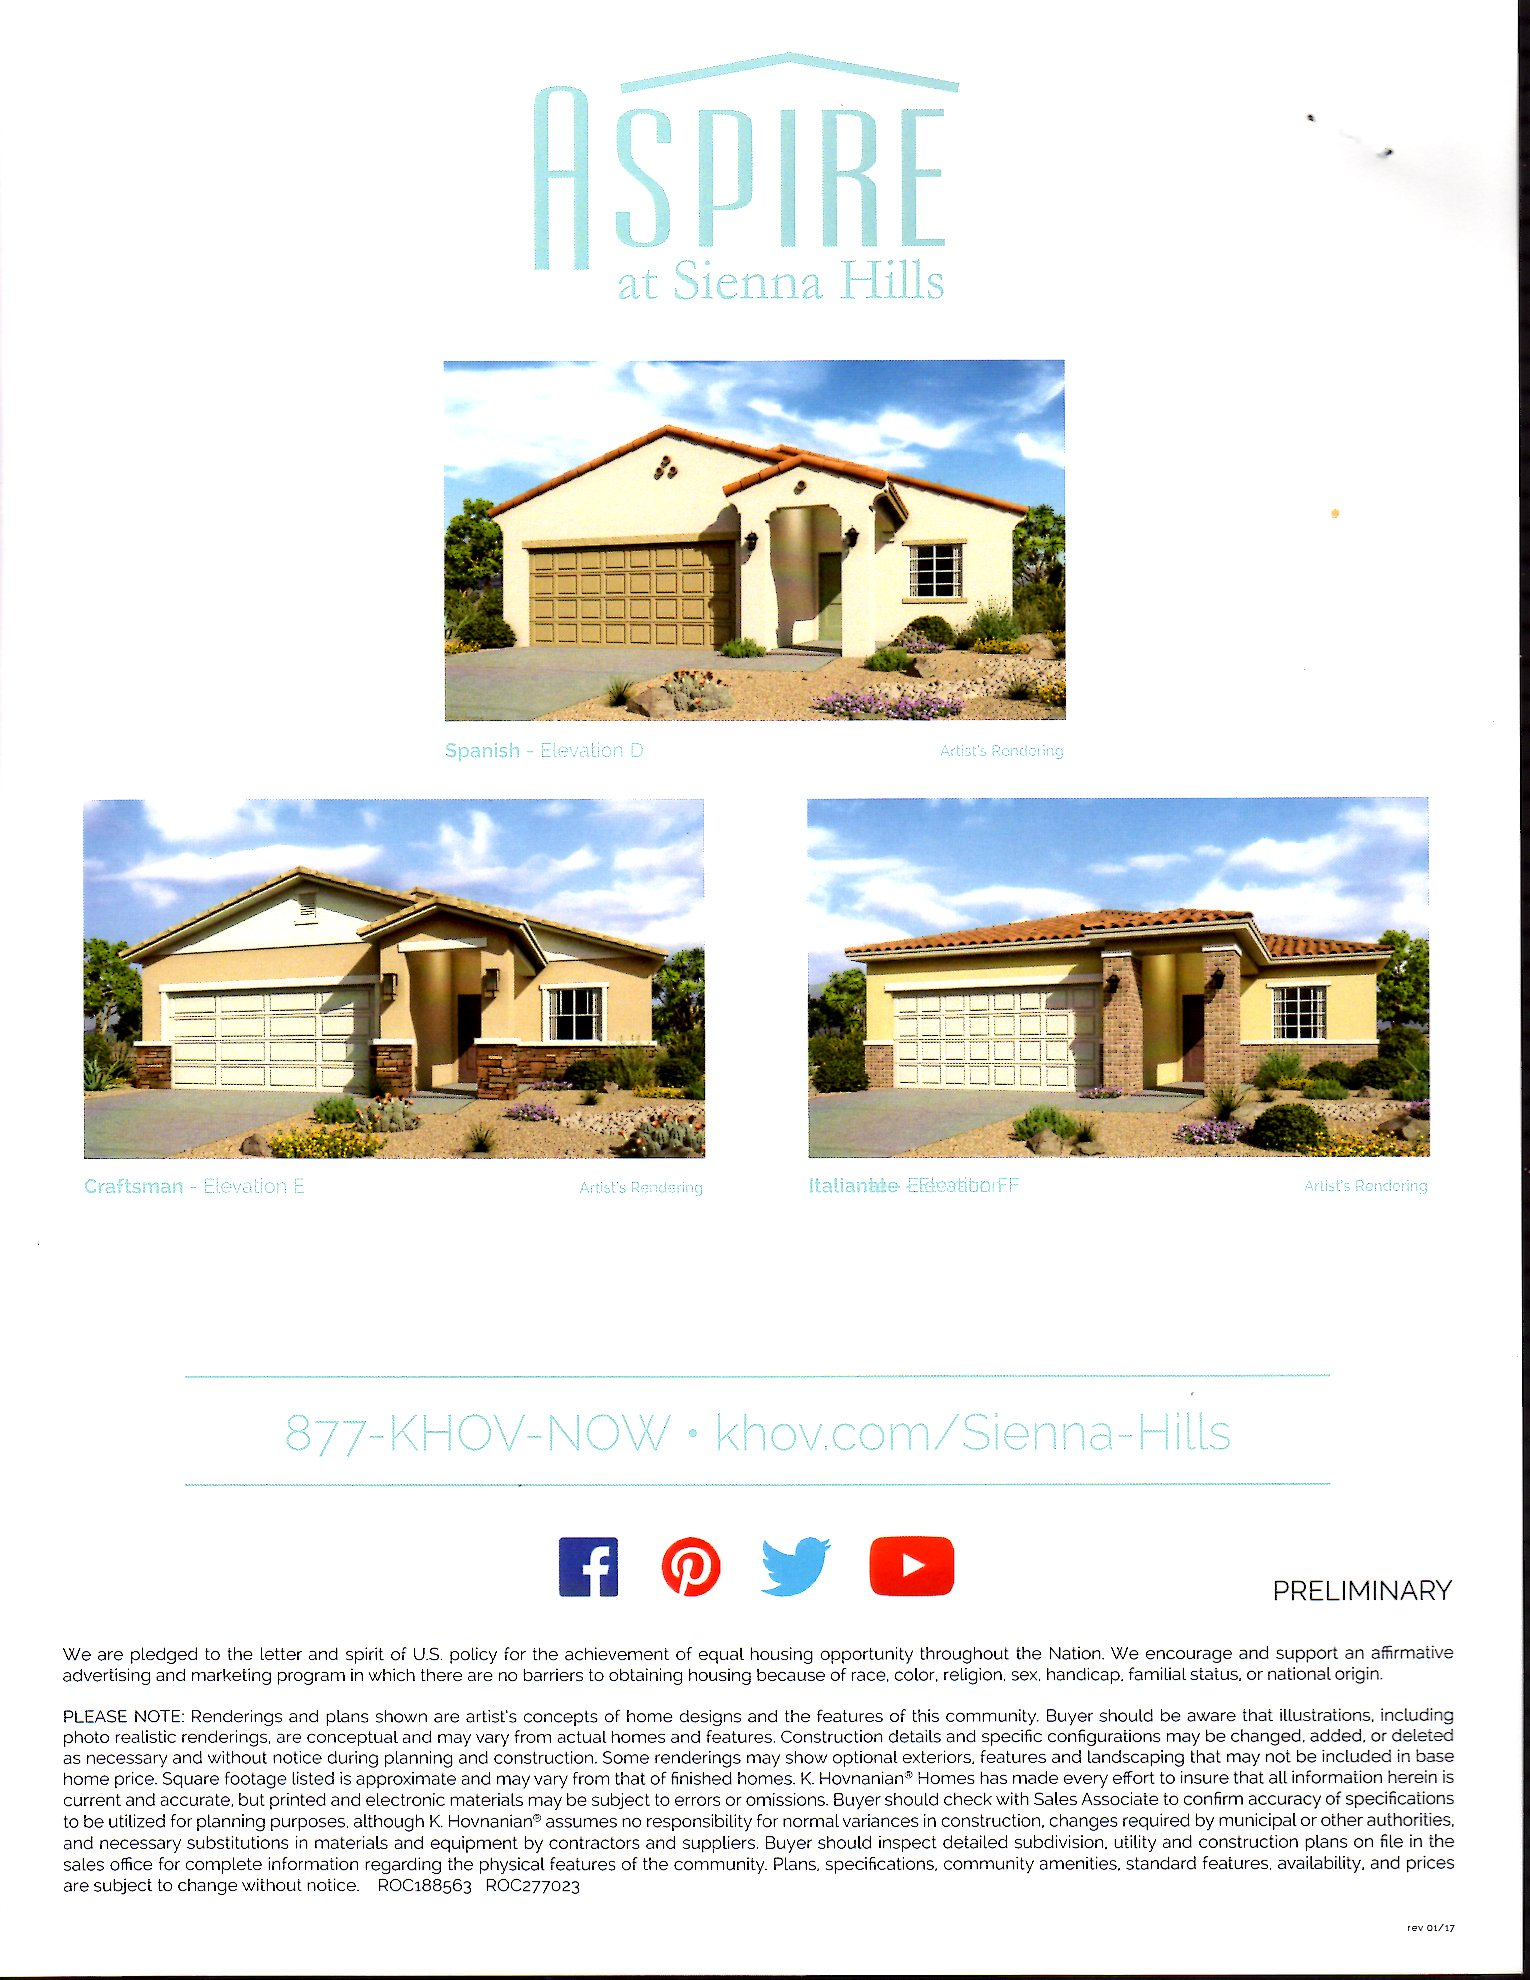 Carnival  - 1395 sq ft Single Level Home